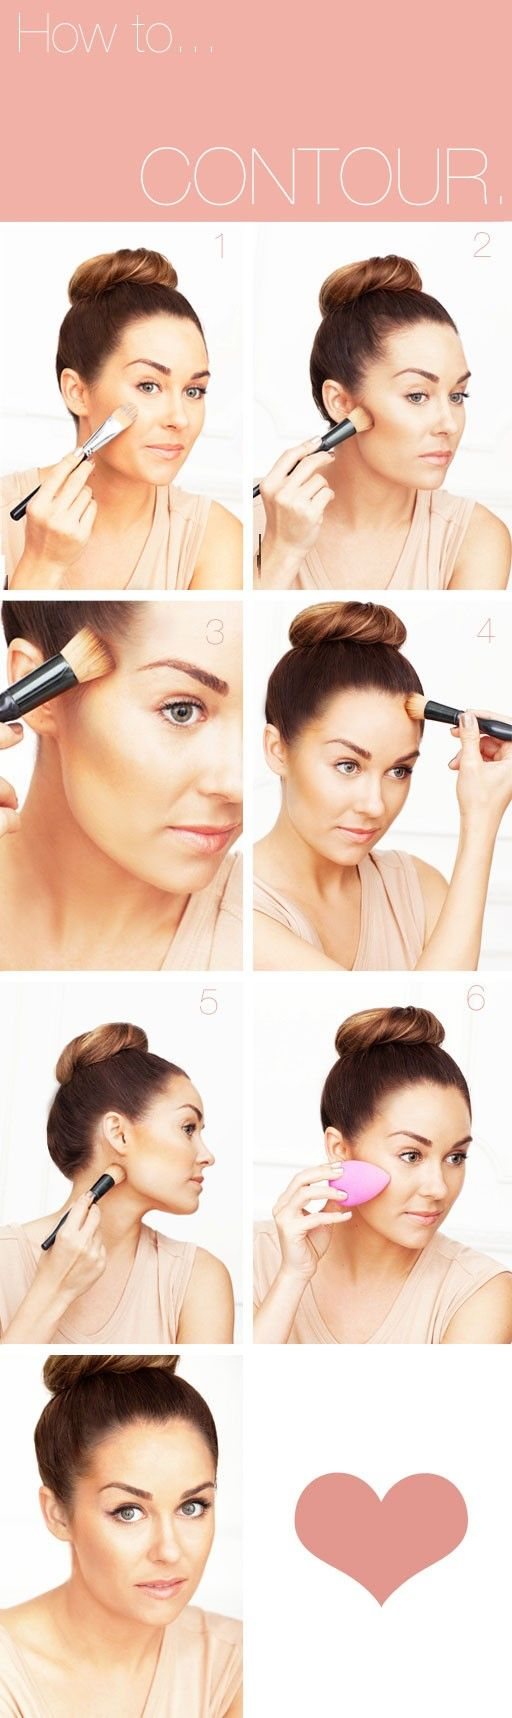 More Tips On How To Contour And Highlight The Face Here  Http: